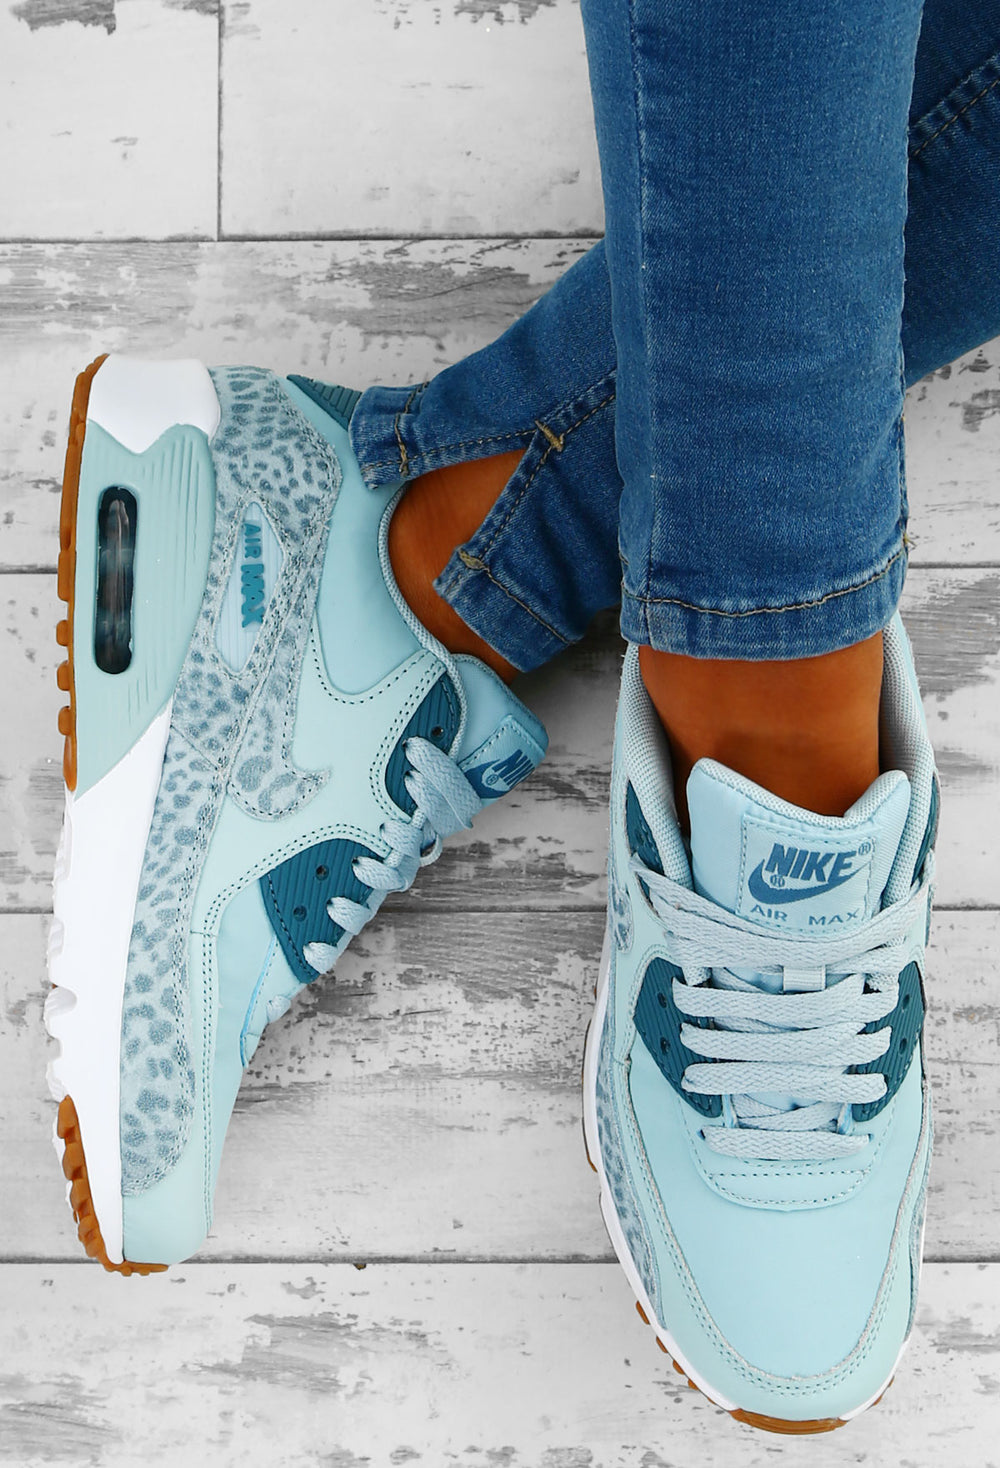 Nike Air Max 90 Pink Leopard Trainers UK 3 in 2019 | Nike